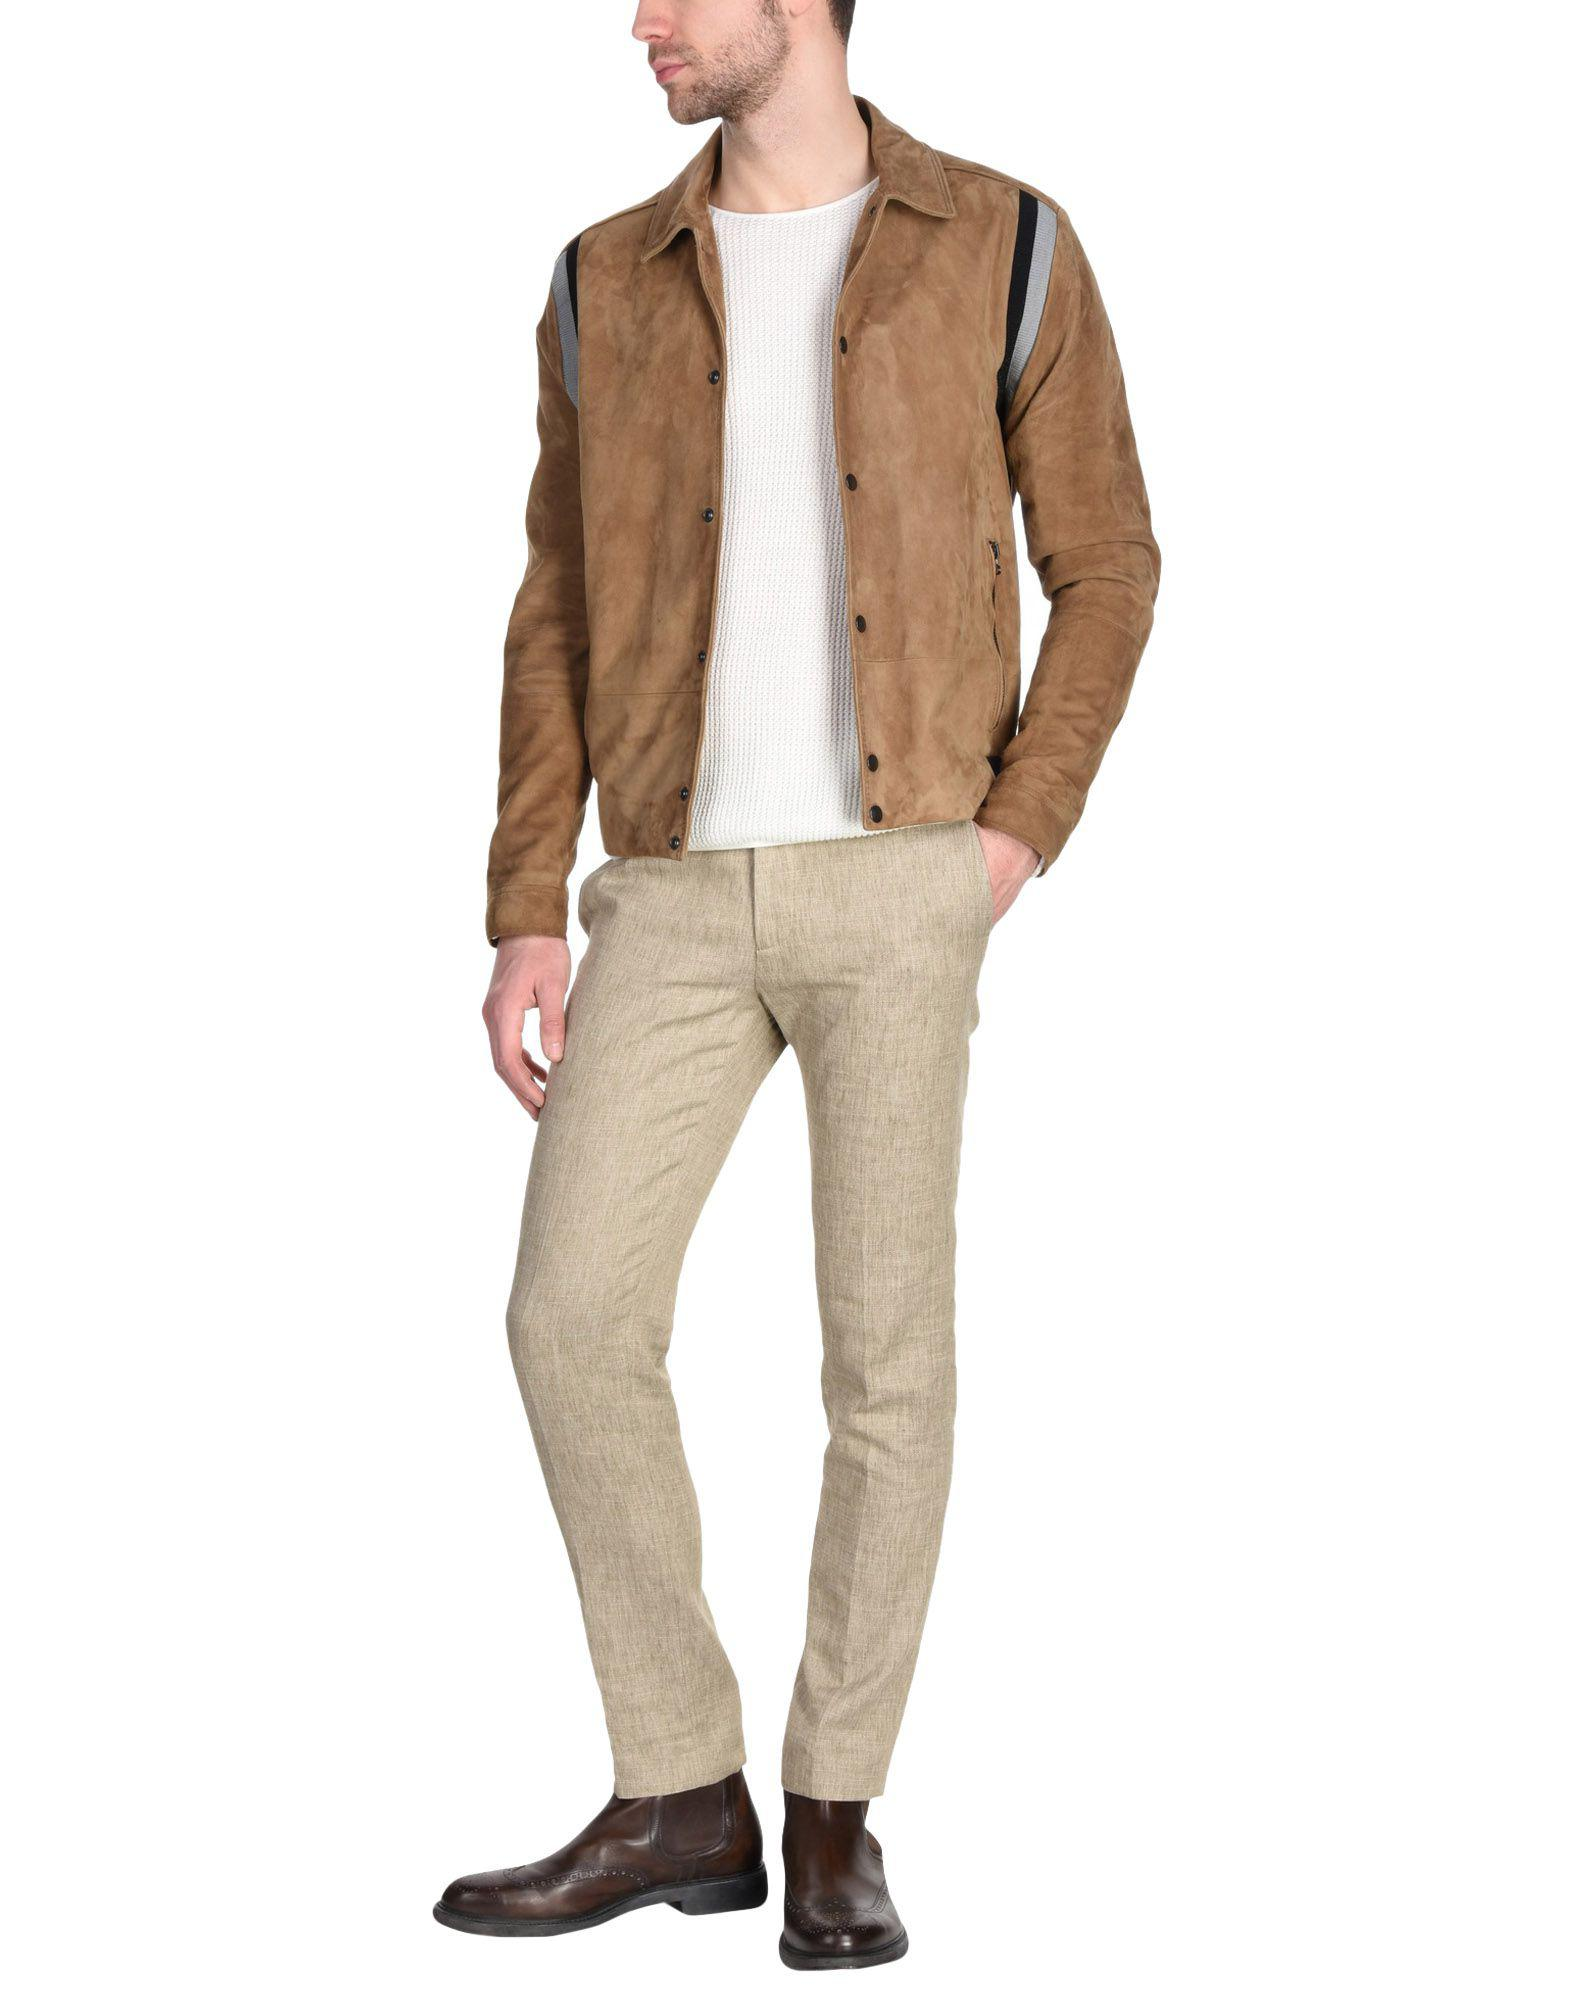 Lanvin Leather Jackets in Camel (Brown) for Men